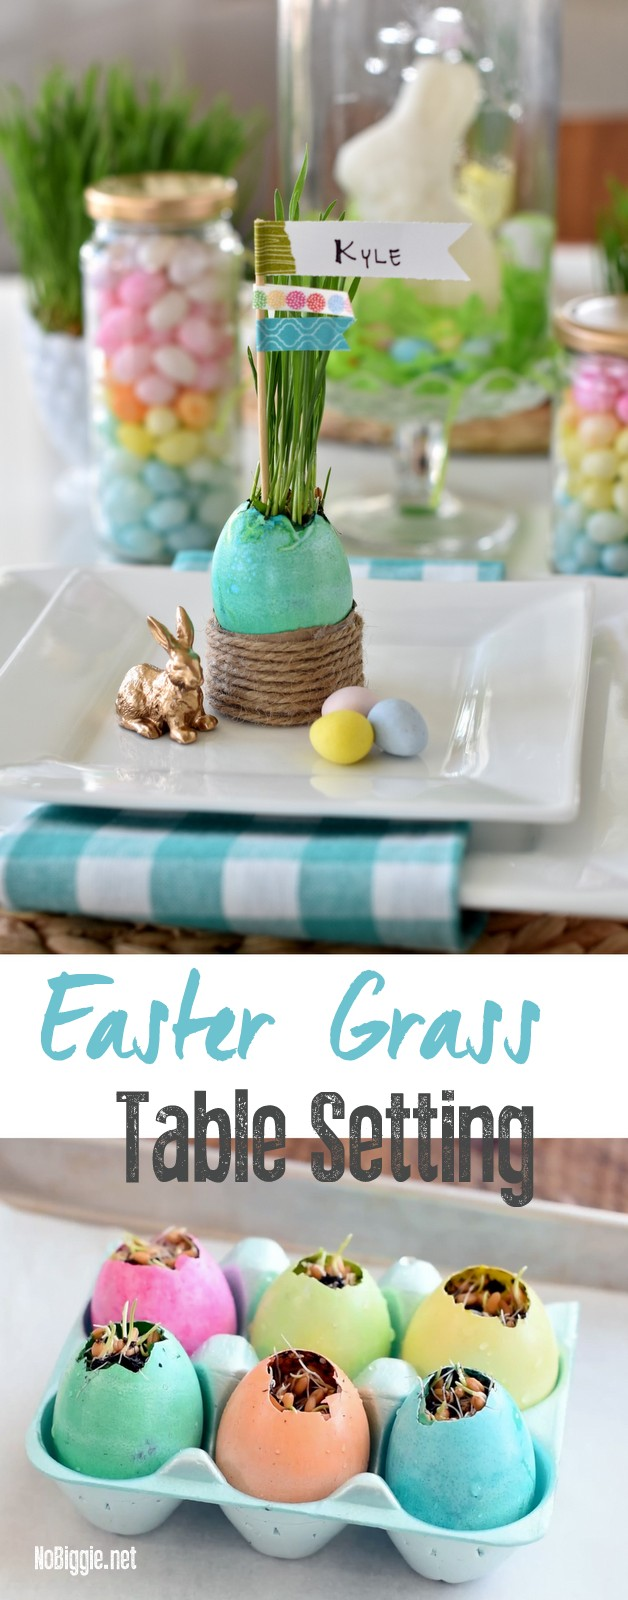 Easter Grass Table Setting DIY video